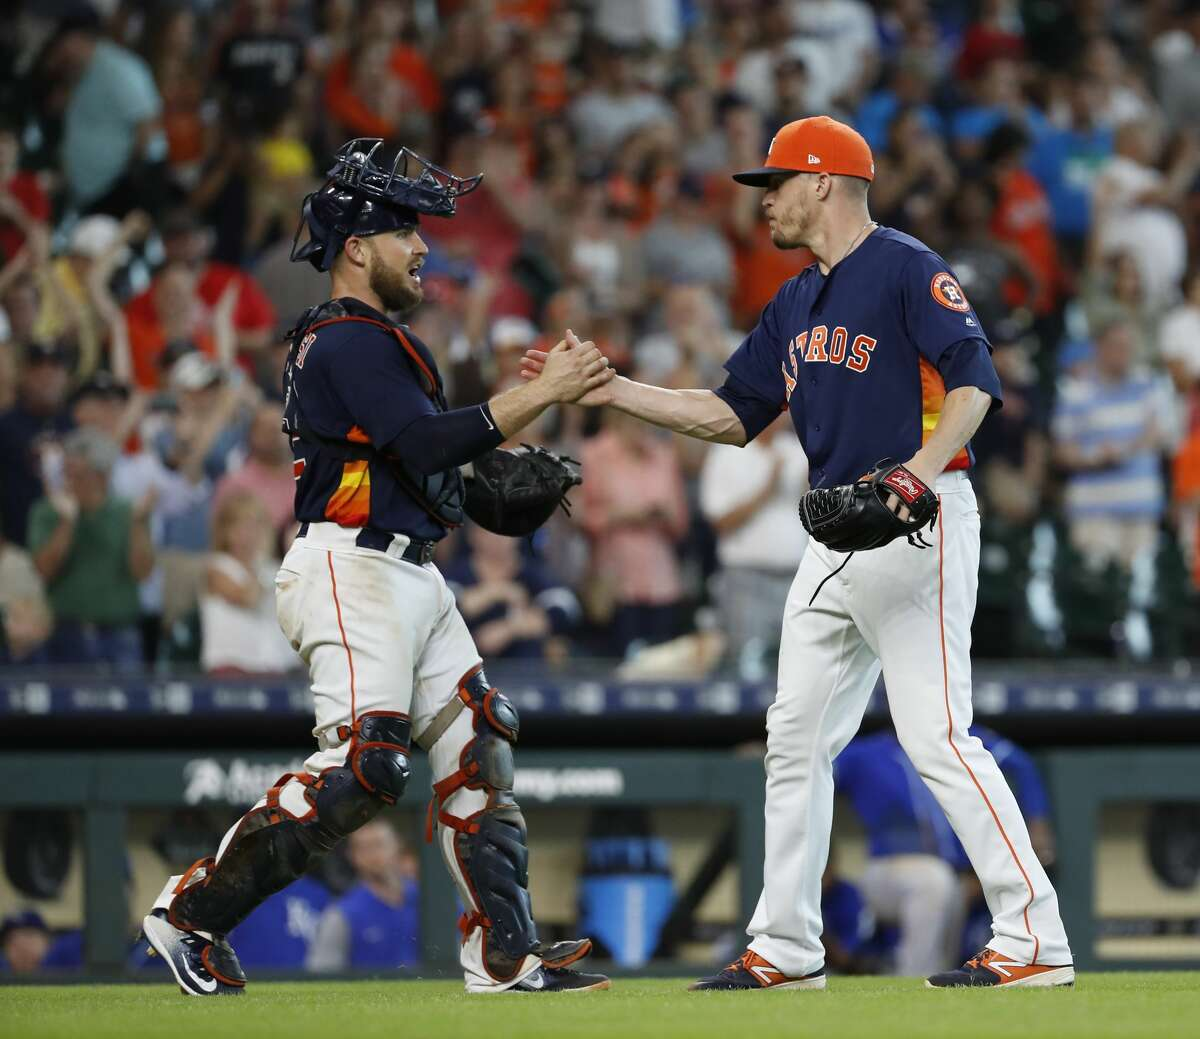 Houston Astros relief pitcher Ken Giles (53) celebrates with catcher Max Stassi (12) after the Astros 11-3 win over the Kansas City Royals during the ninth inning of an MLB game at Minute Maid Park, June 24, 2018, in Houston. ( Karen Warren / Houston Chronicle )